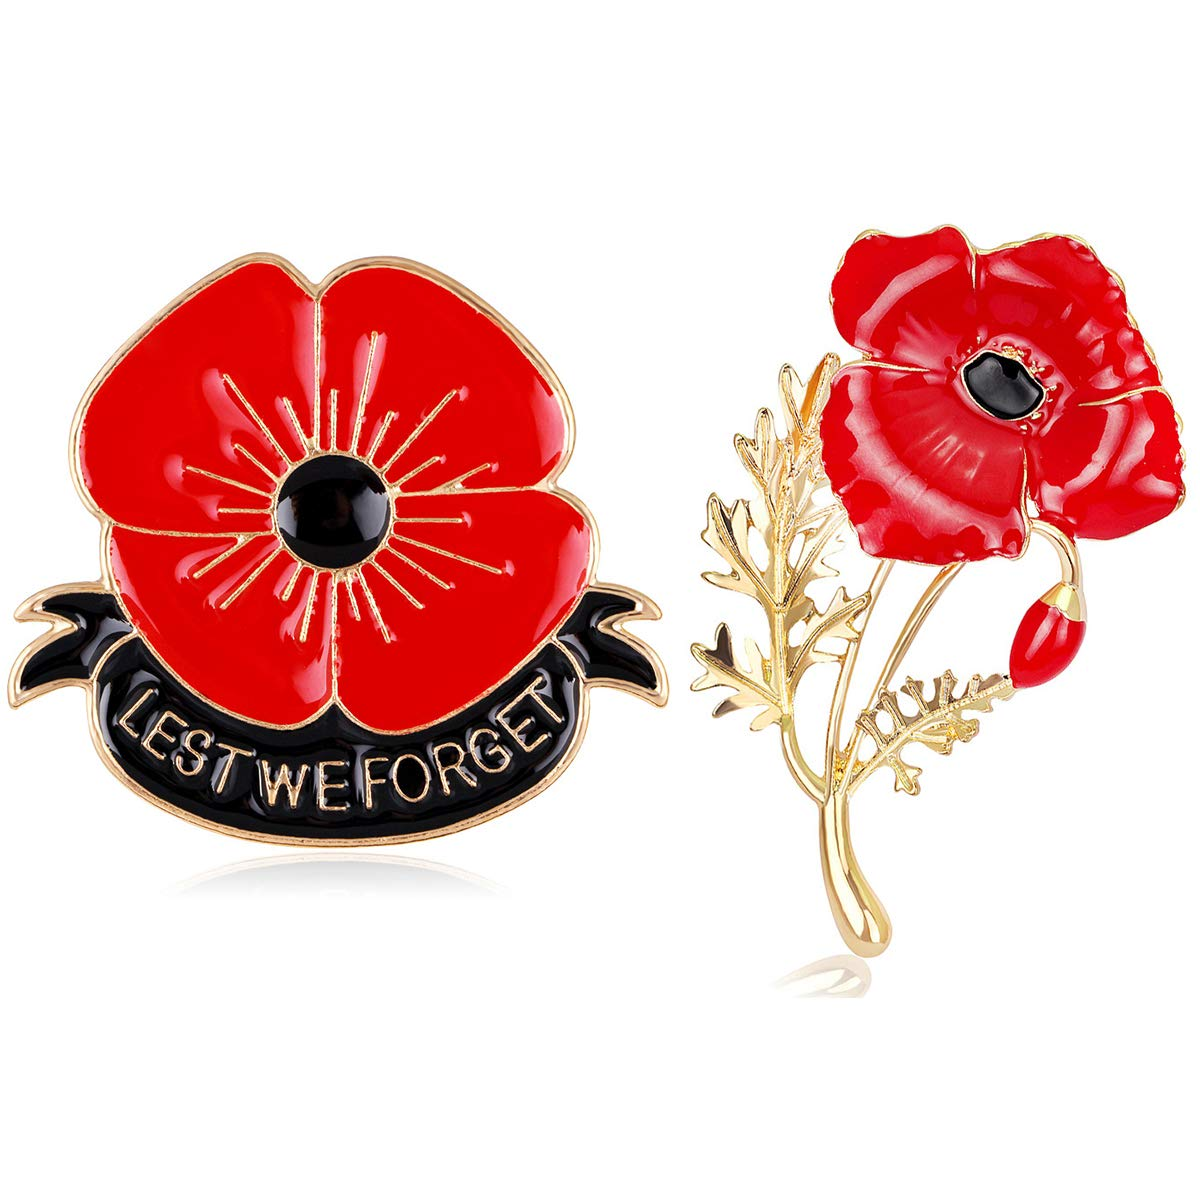 Blinst 2 Pcs Lest We Forget Poppy Brooch Pin Flower Broach Memorial Day Remembrance Day